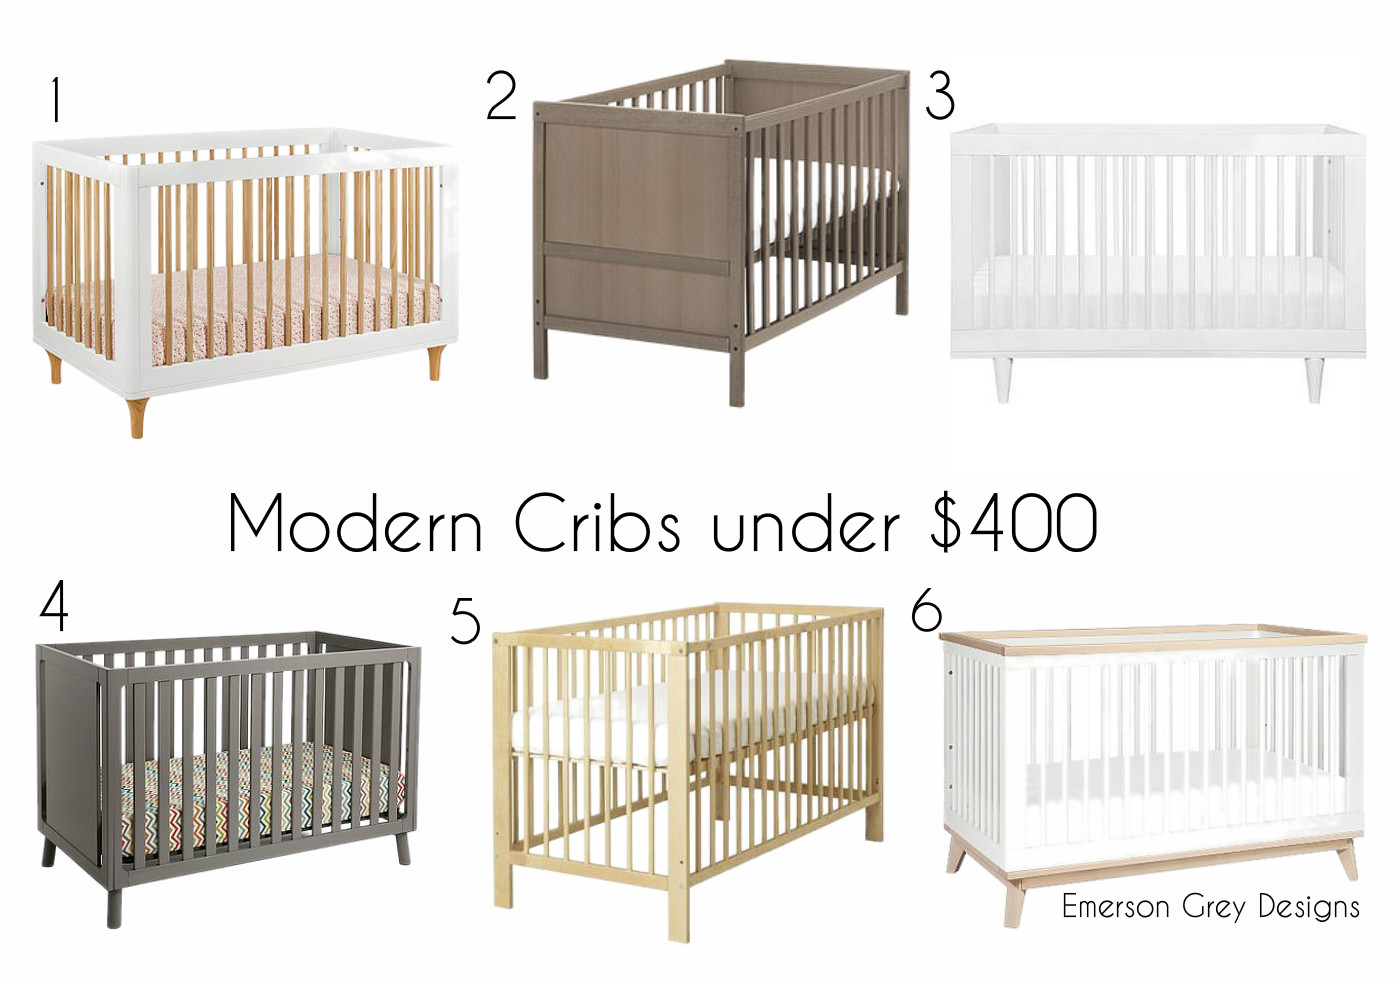 crib designs furniture designer crib with white dotted walls and  - top emerson grey designs edesign interior stylist not cheap in with cribdesigns